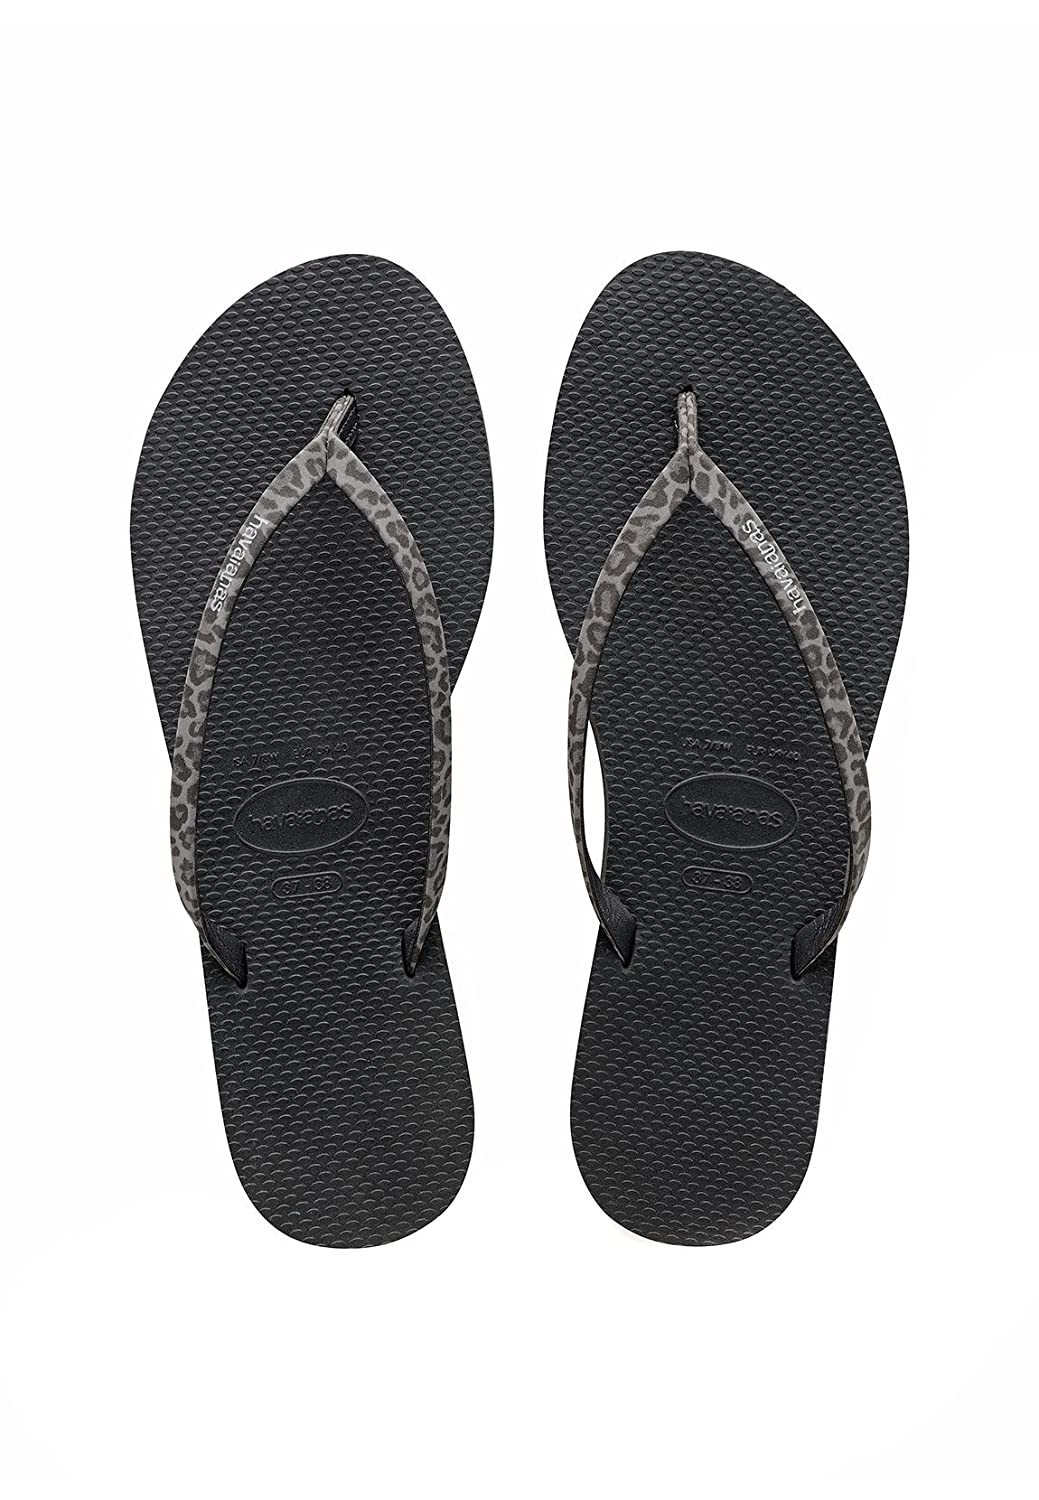 bc302fee0e1b Havaianas Women s You Animals Flip Flops Animal Print Strap  Amazon.co.uk   Shoes   Bags